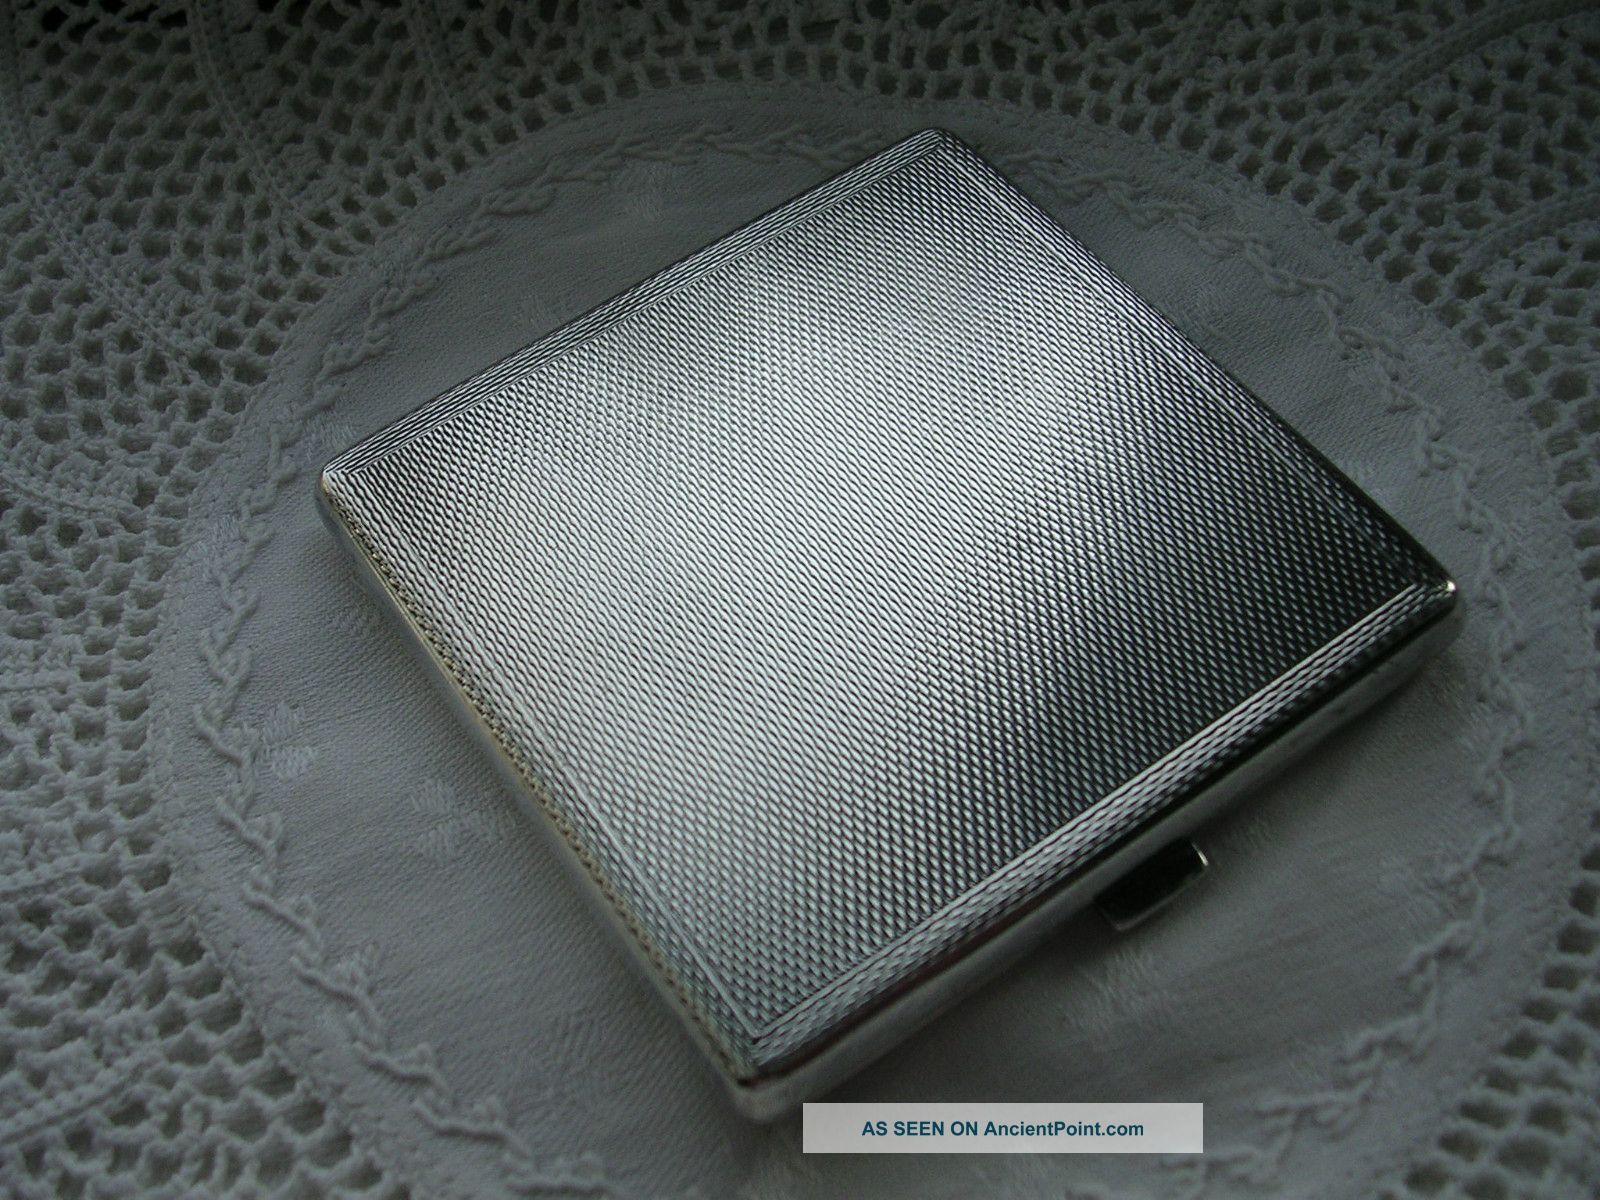 Vintage Solid Silver Ladies Compact Birmingham 1950 - Crack To Mirror Other photo